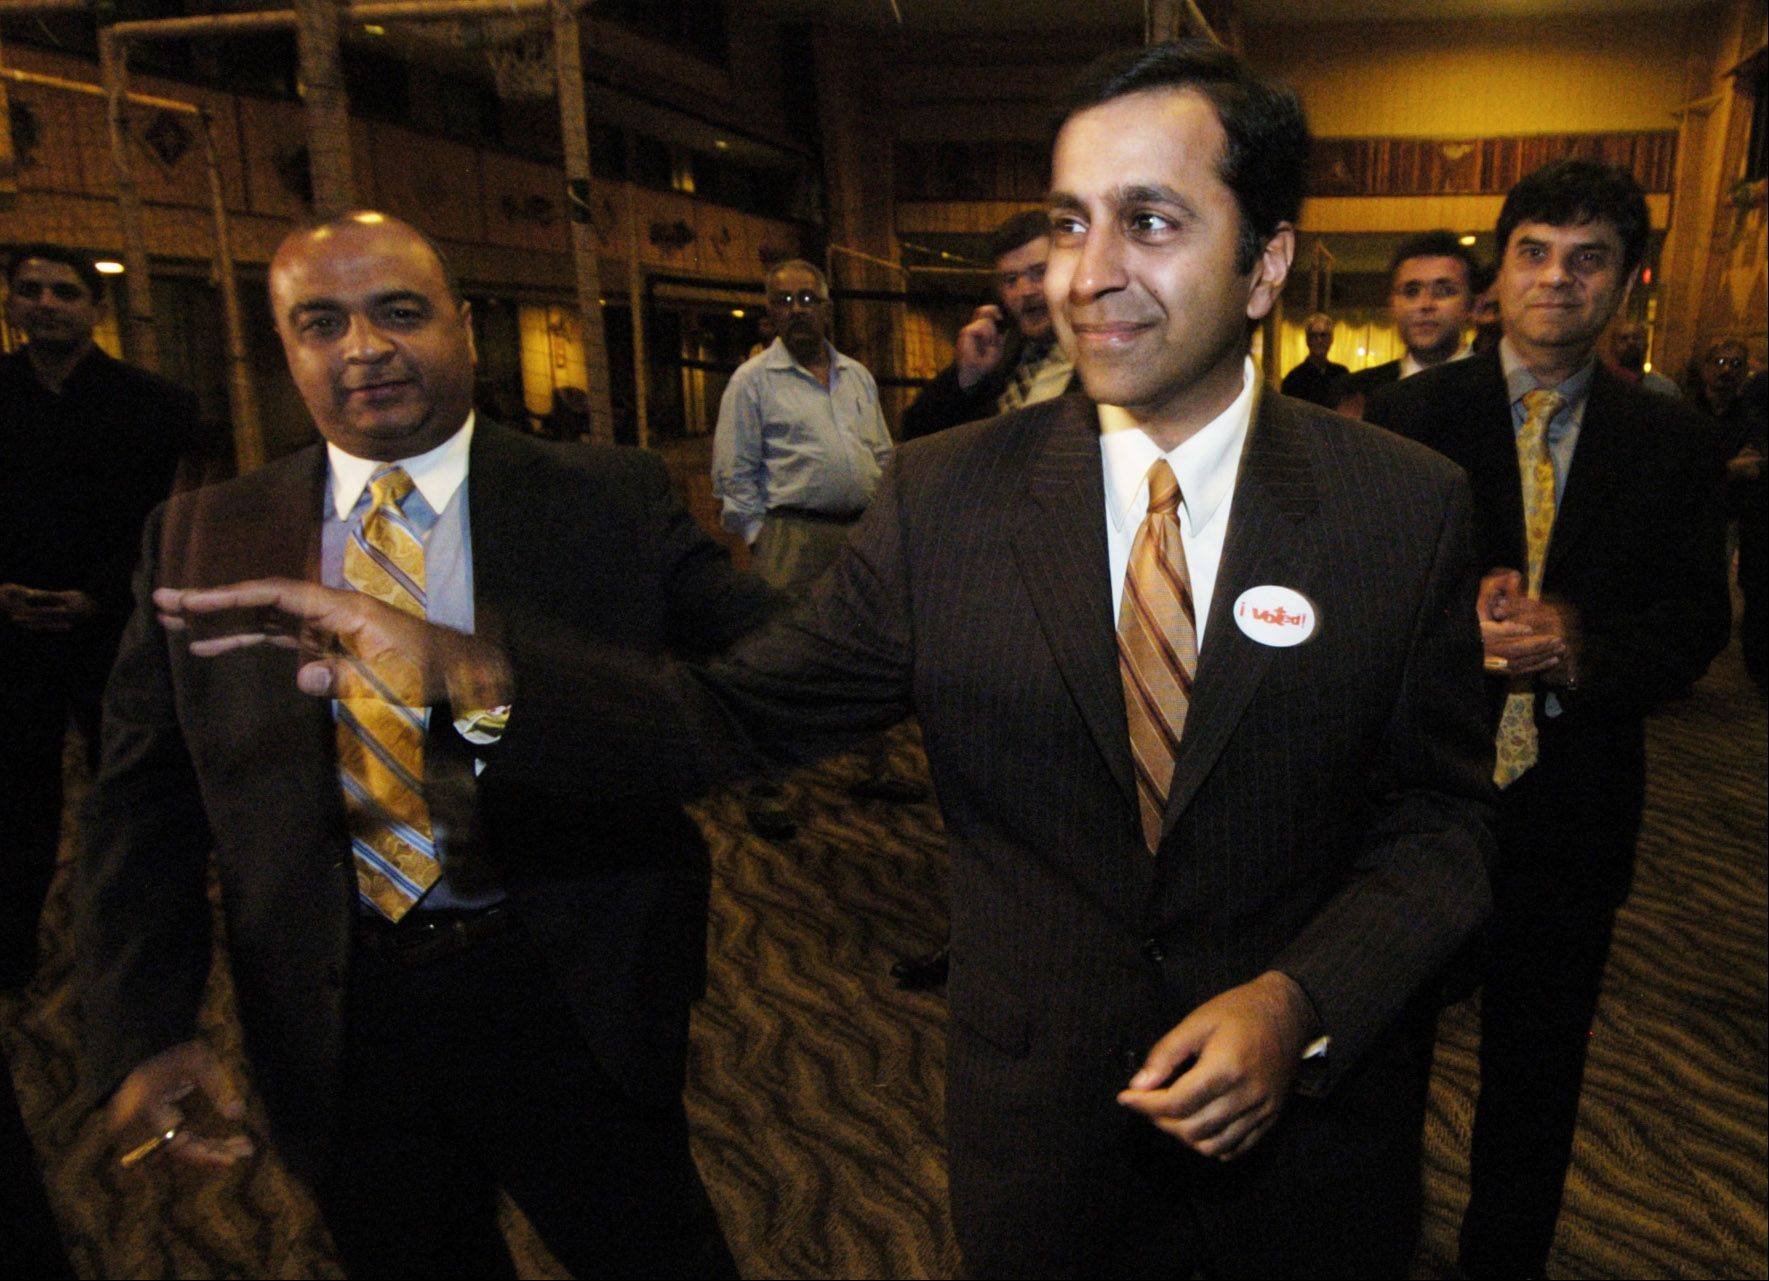 Raja Krishnamoorthi greets supporters prior to delivering his concession speech in Rolling Meadows after losing to Tammy Duckworth in the 8th Congressional District Democratic primary.